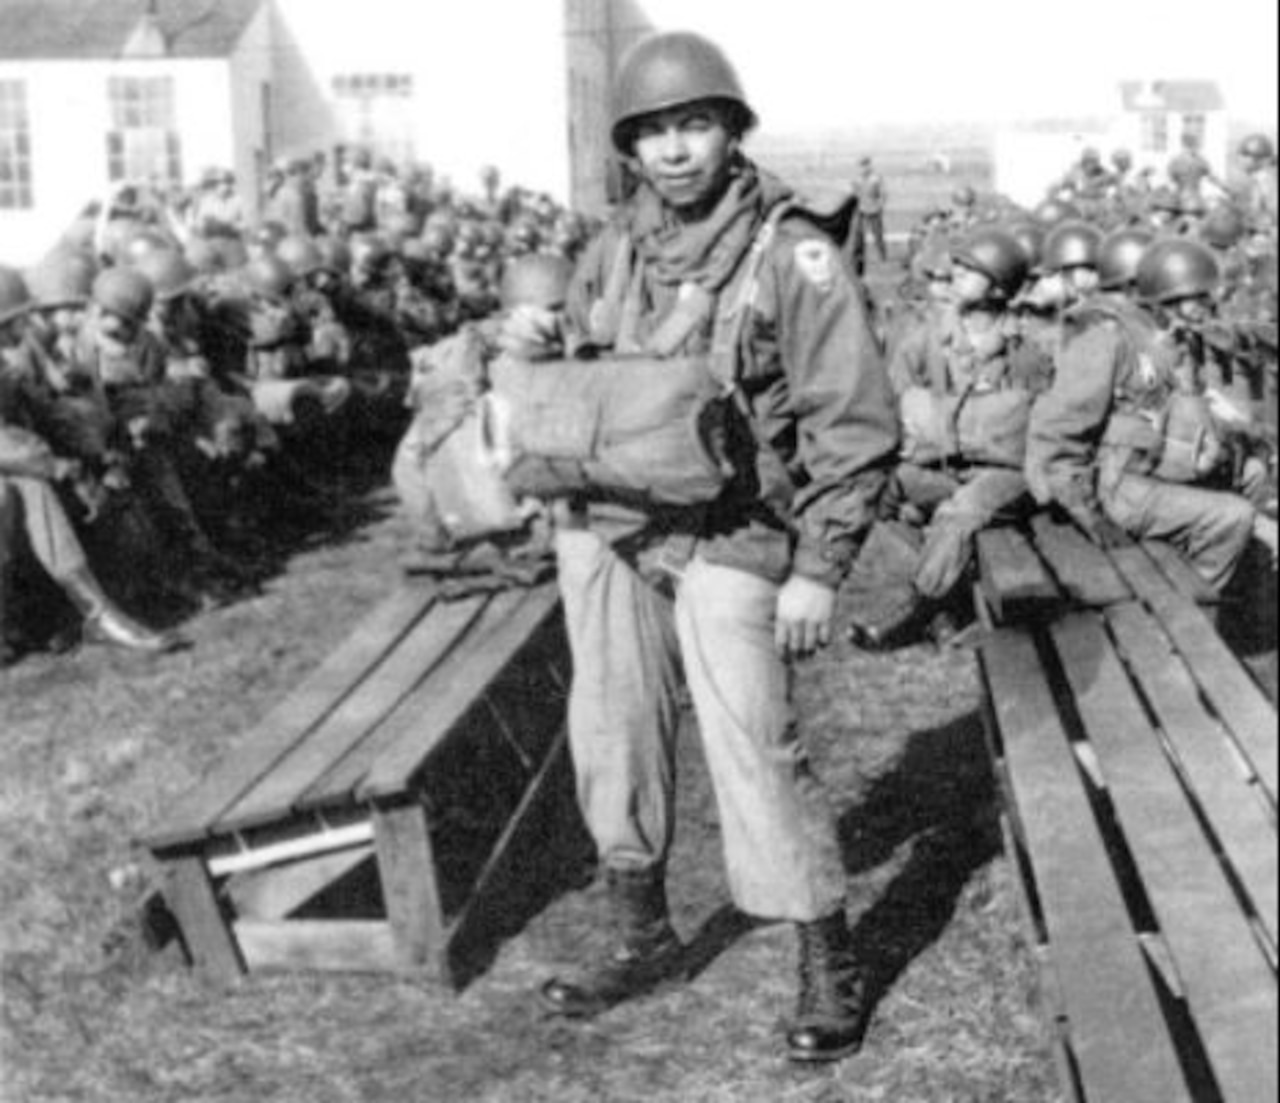 A man wearing a front-loaded parachute stands in the foreground with other men seated on benches behind him.